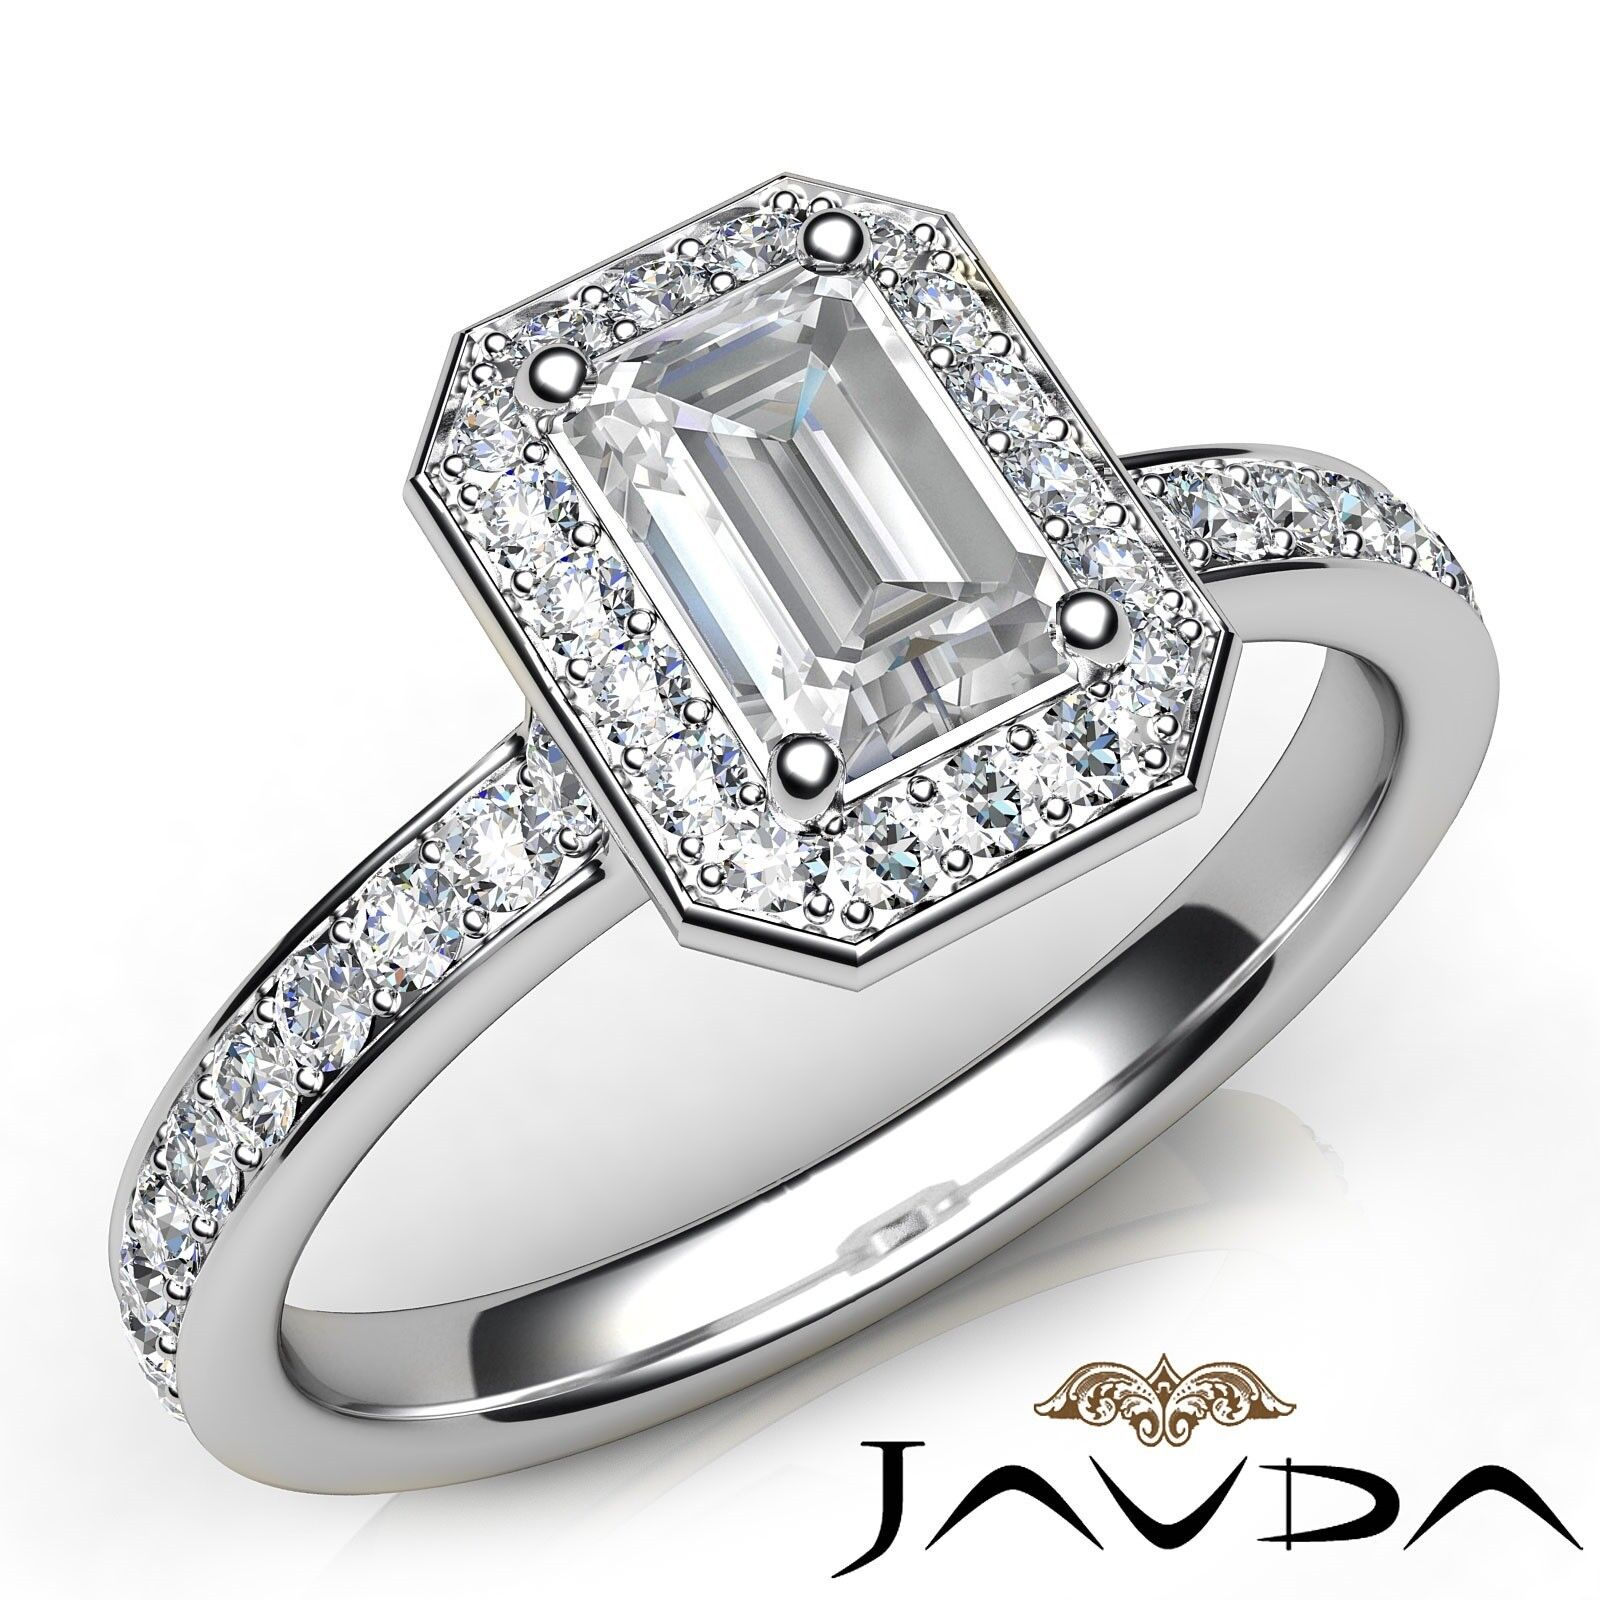 1.25Ctw Halo Pave Set Emerald Diamond Engagement Her Ring GIA F-VVS2 White Gold